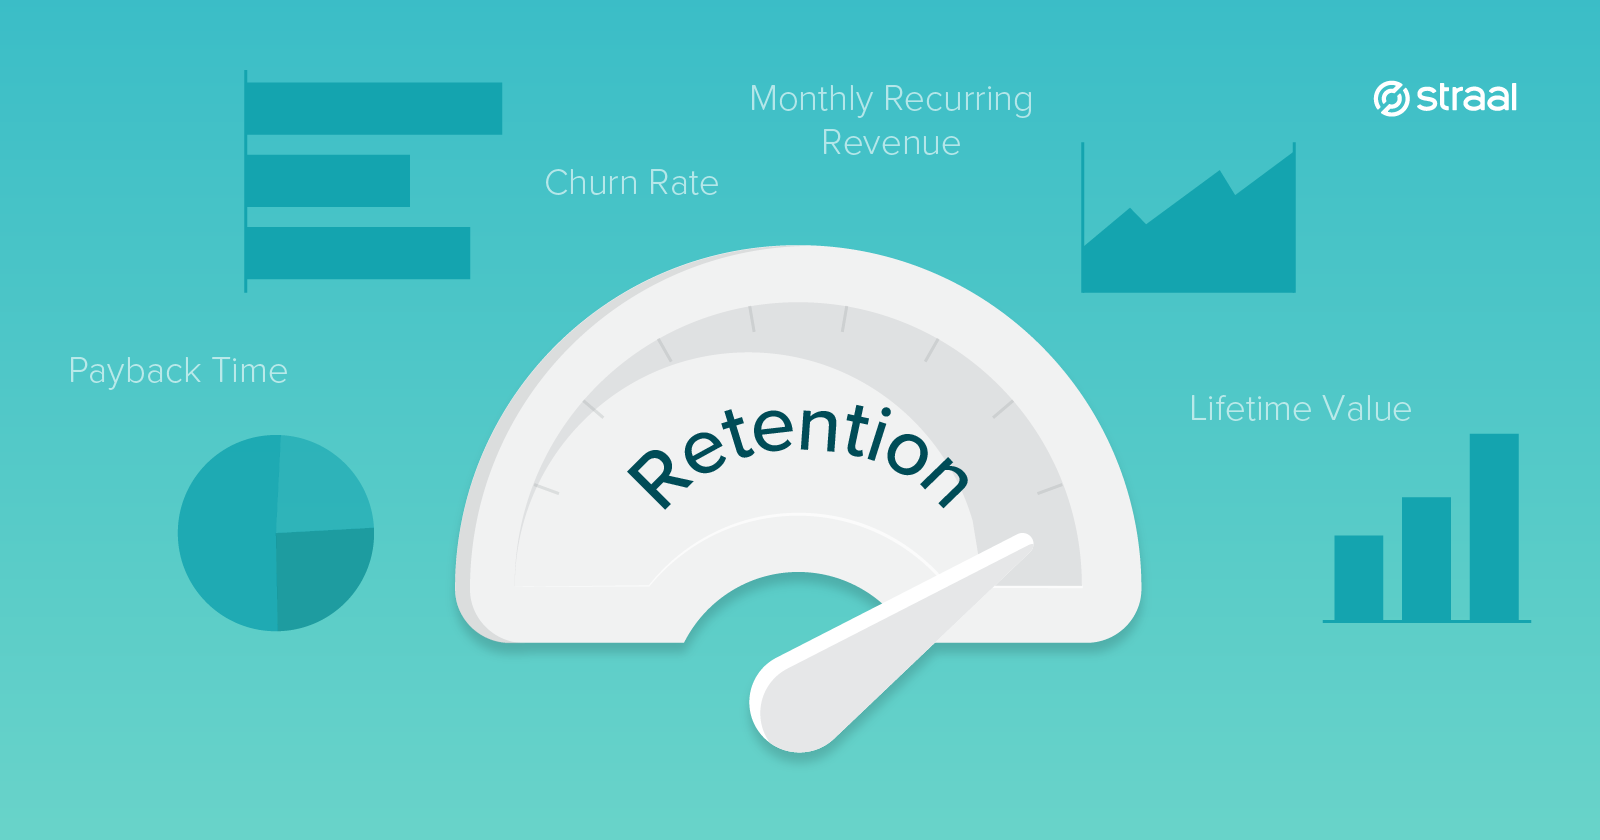 Retention metrics cover